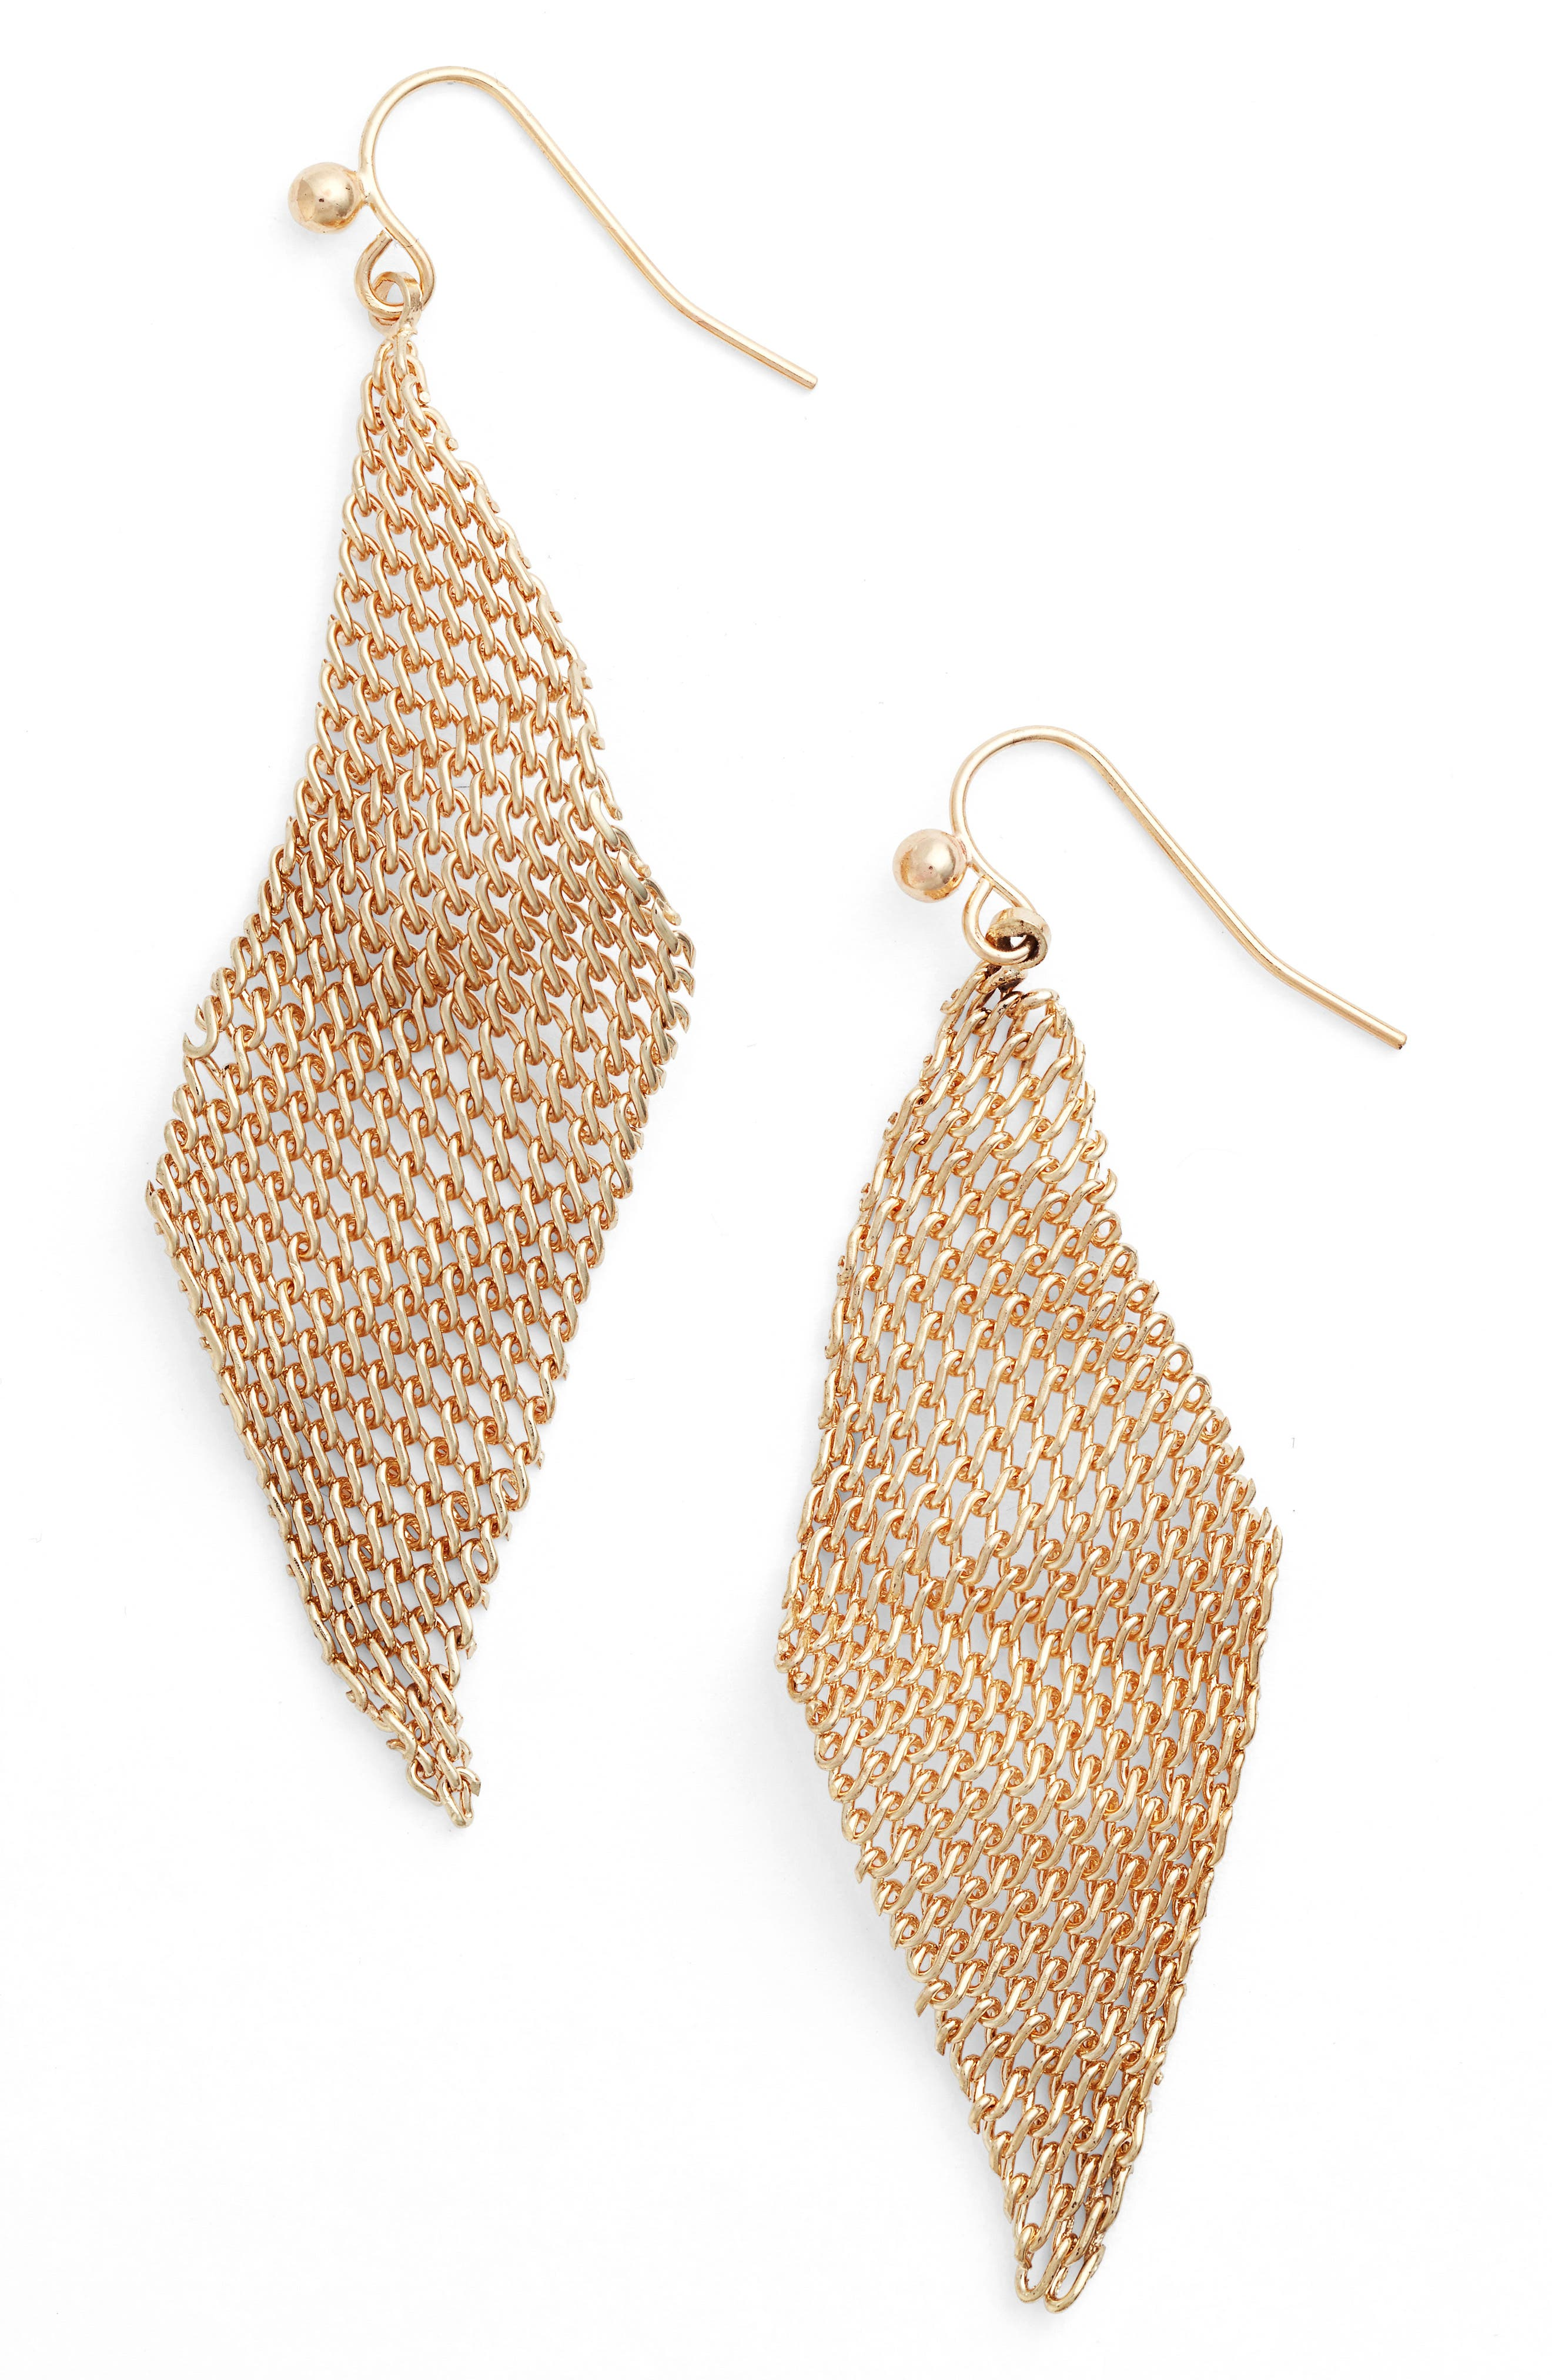 Main Image - Jules Smith Mesh Wave Kite Earrings